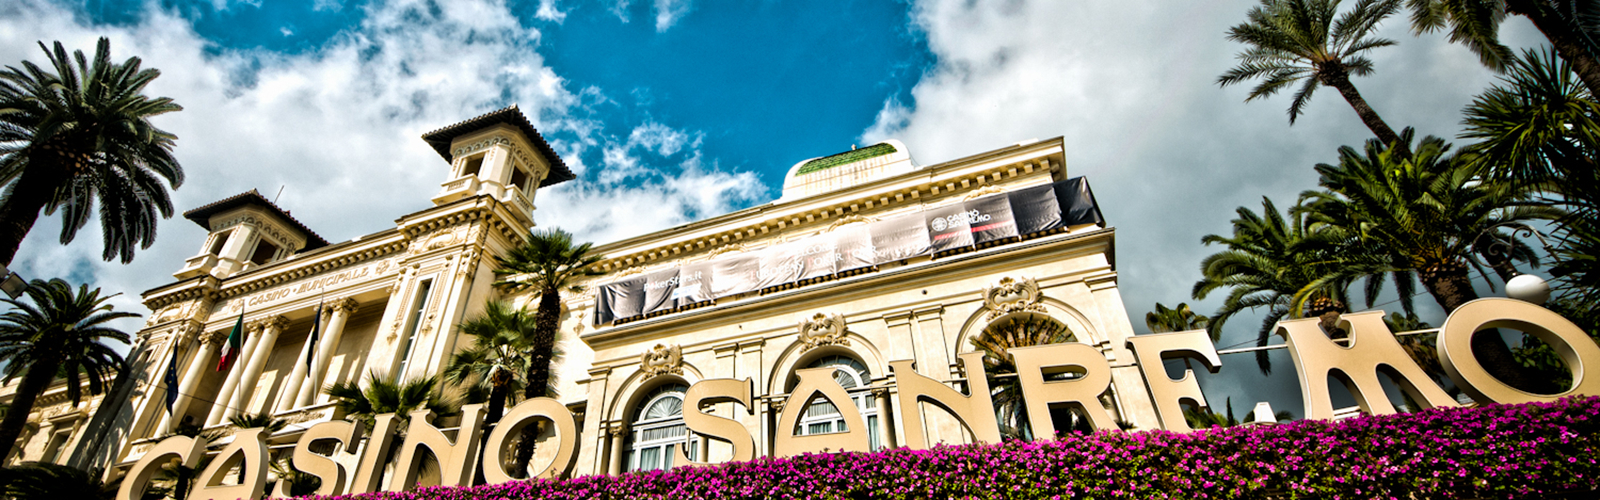 slide_casinosanremo